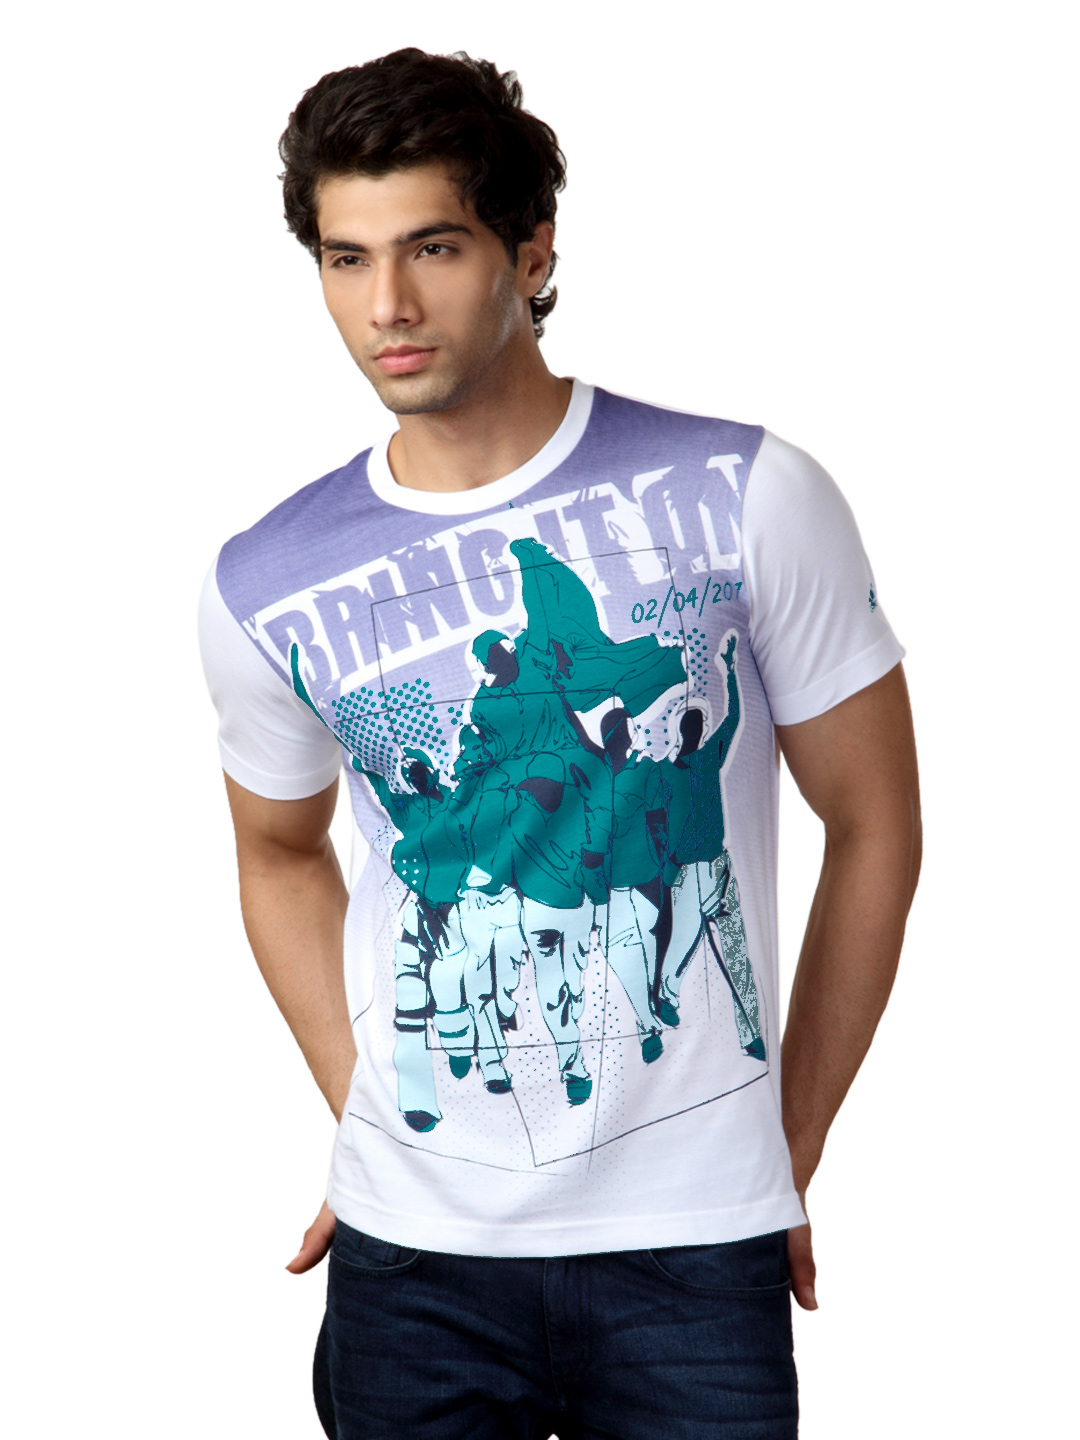 Adidas Printed t Shirts Adidas t Shirt For Men